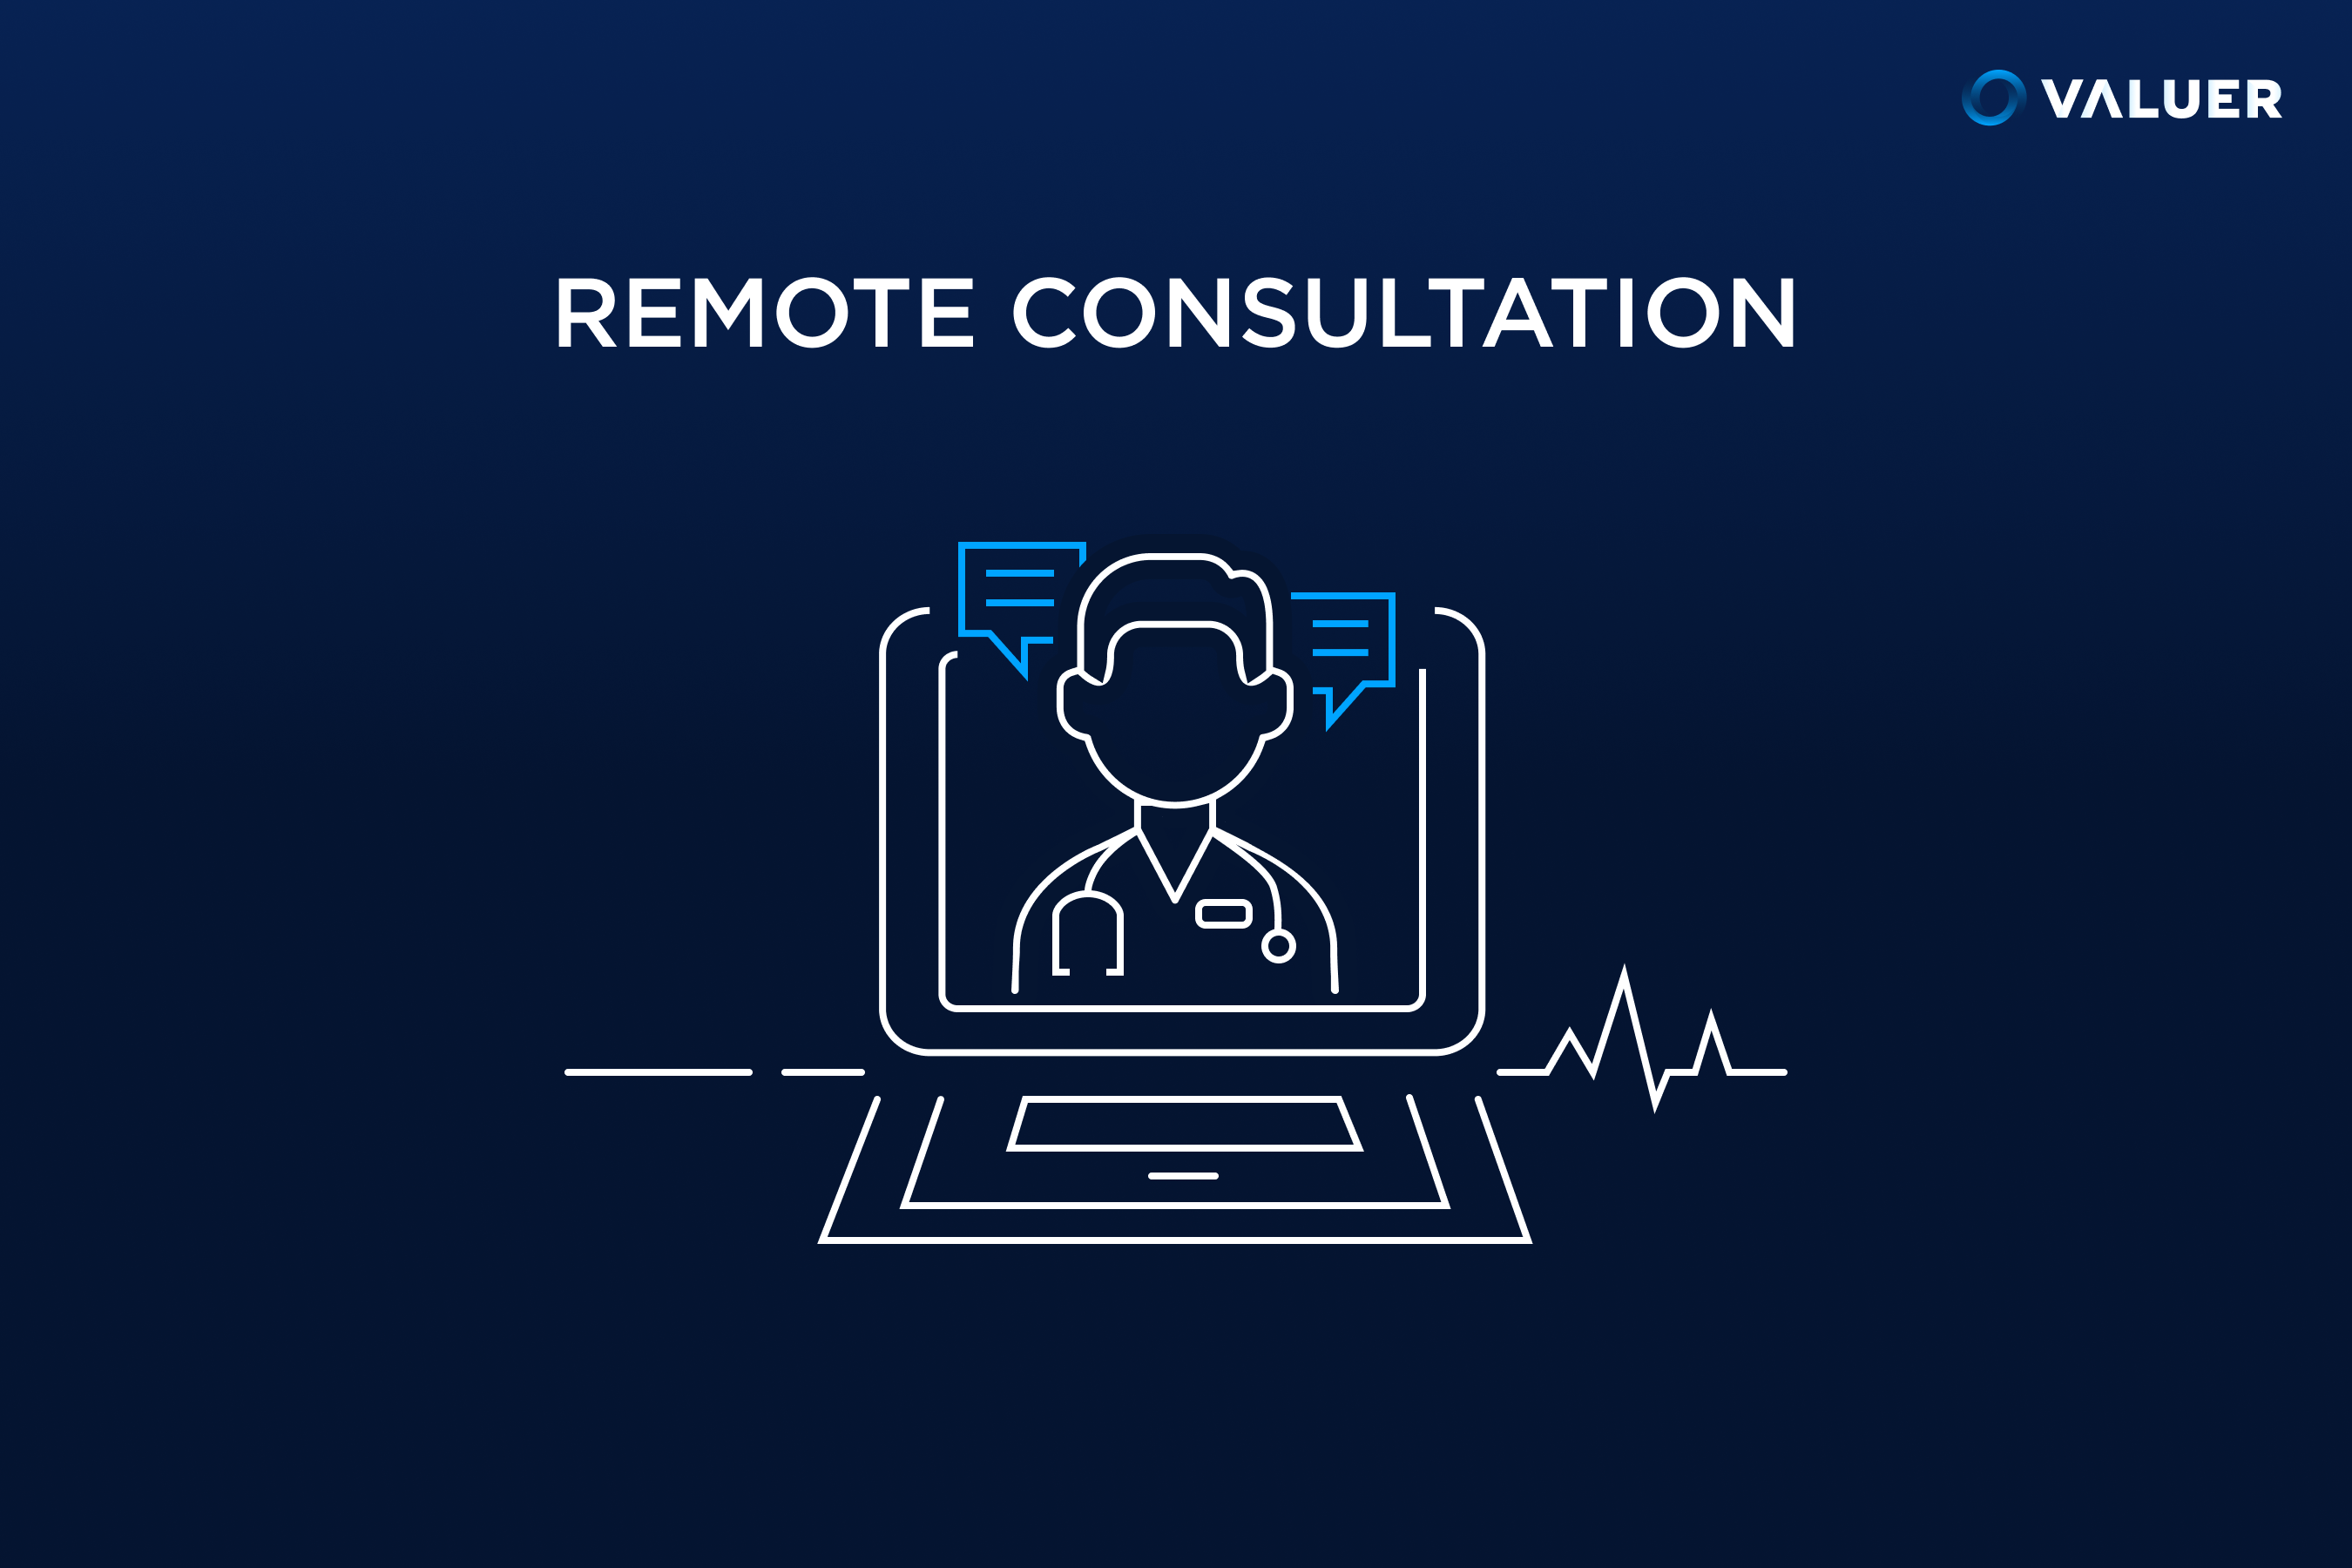 remote consultations with image of a doctor in a computer